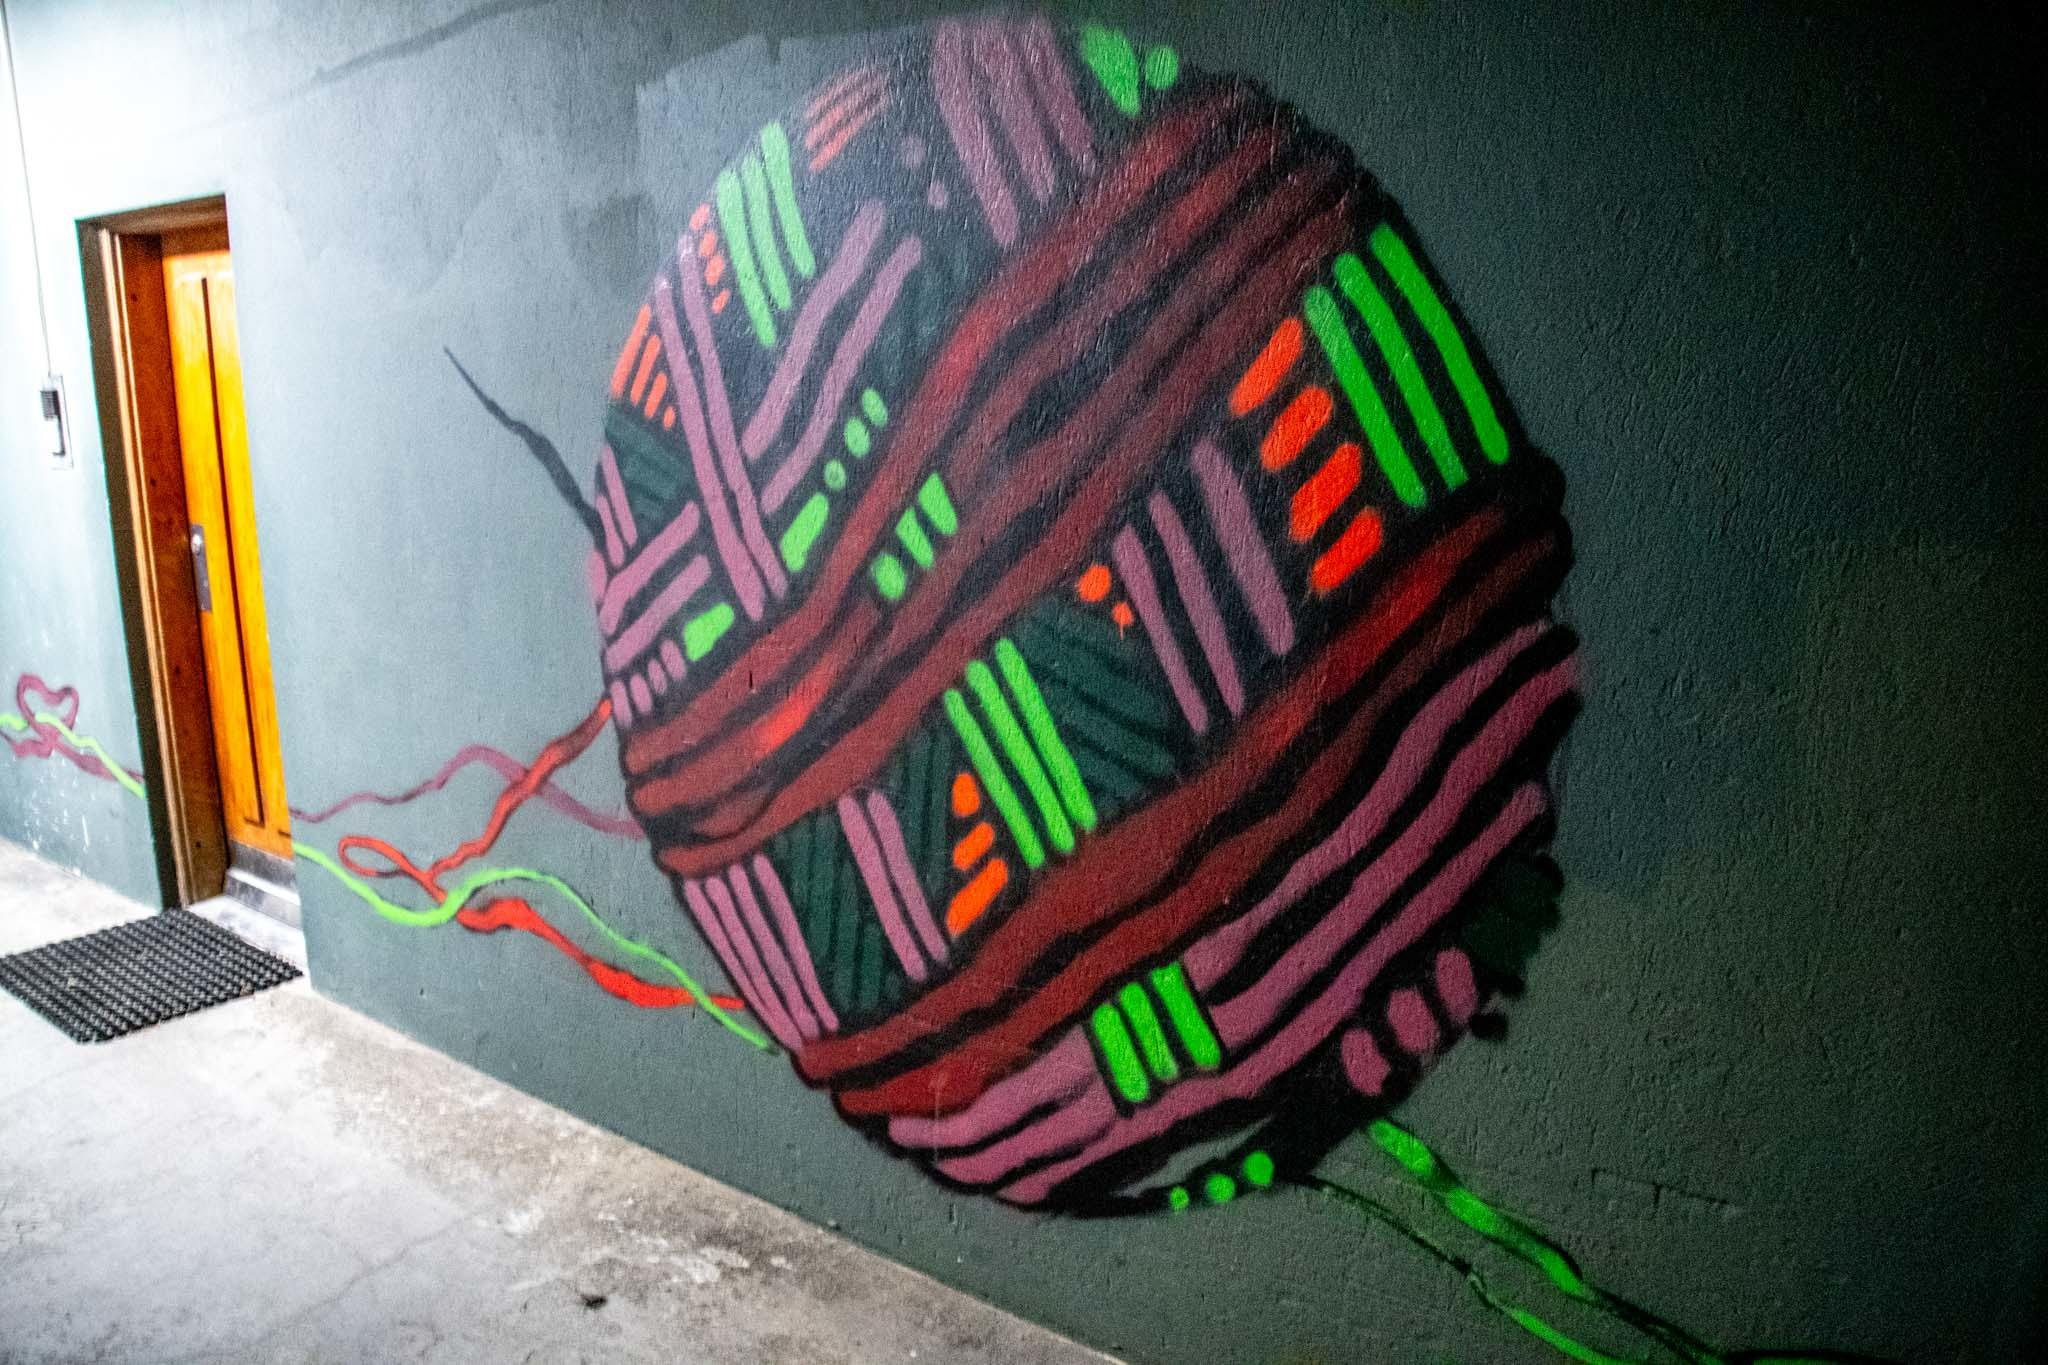 The ball of string is part of a two-part opposing mural.